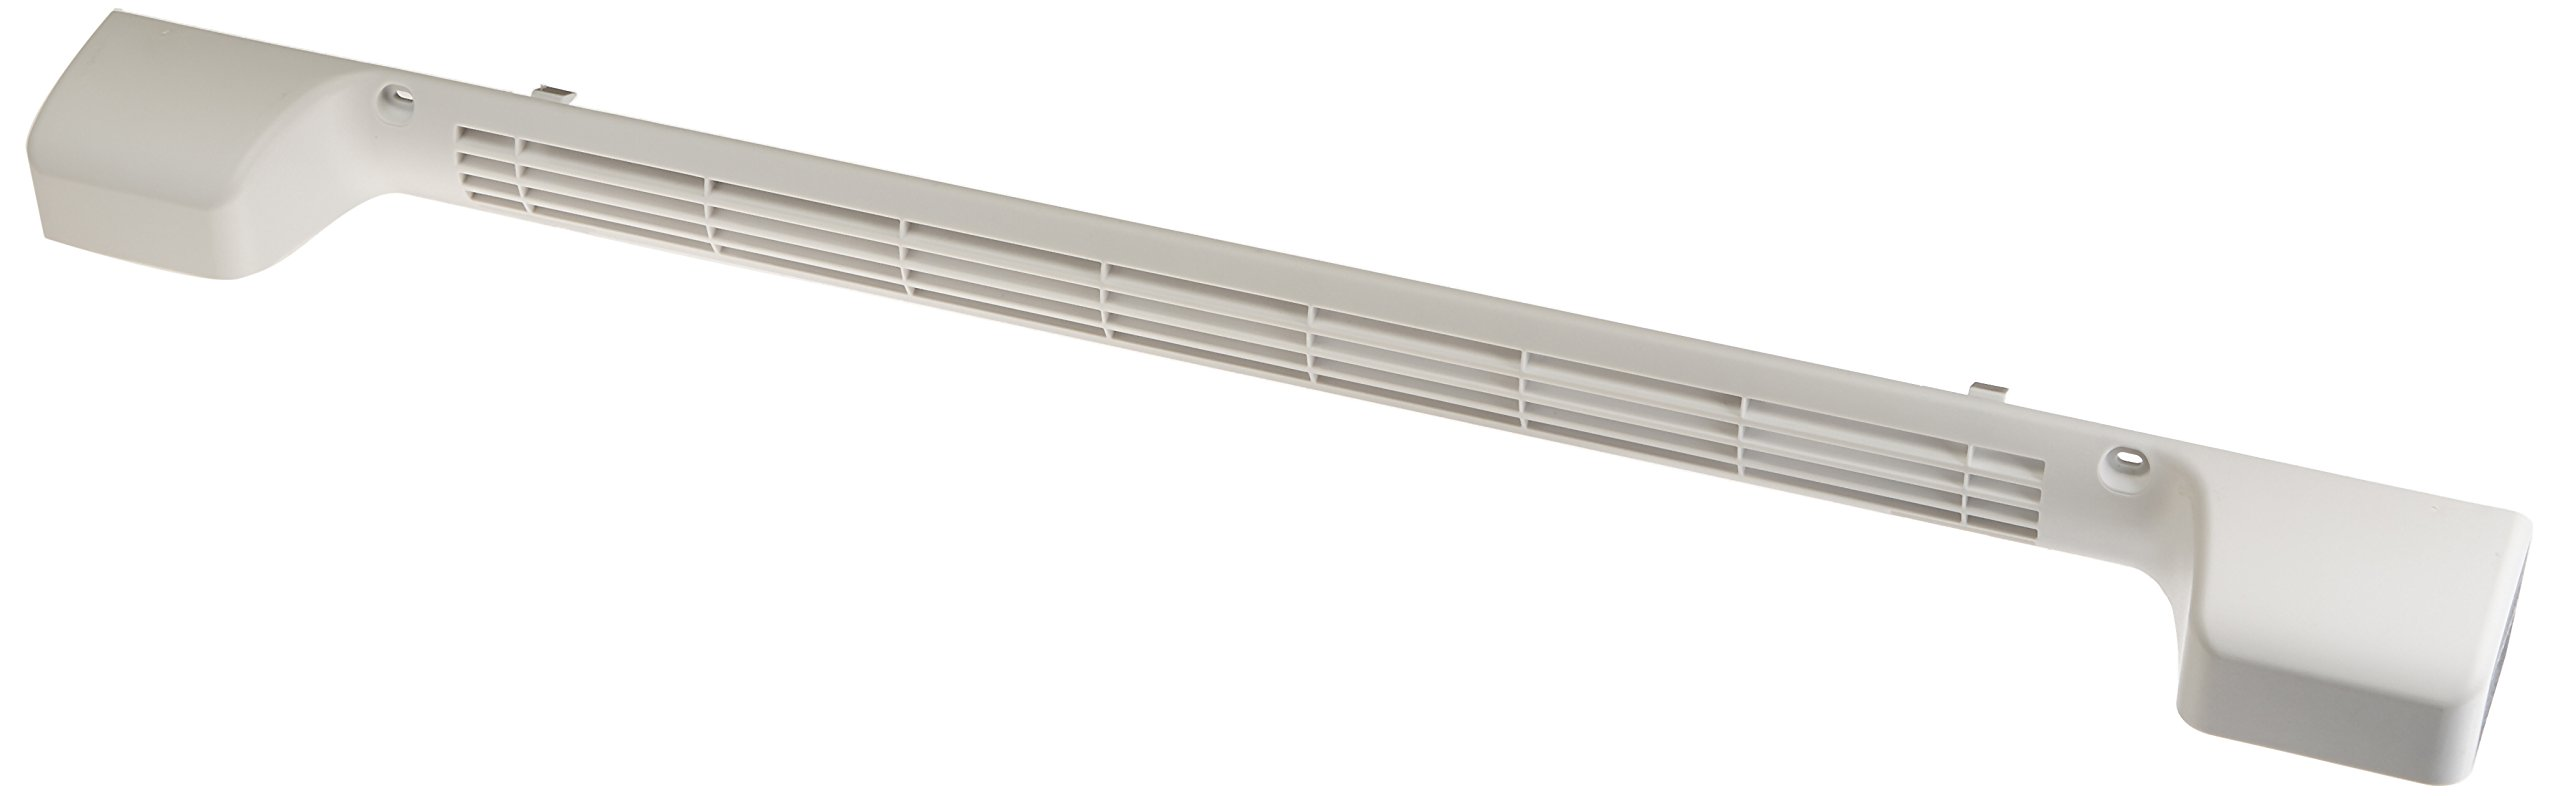 Whirlpool W10534161 Grille Front Refrigerator